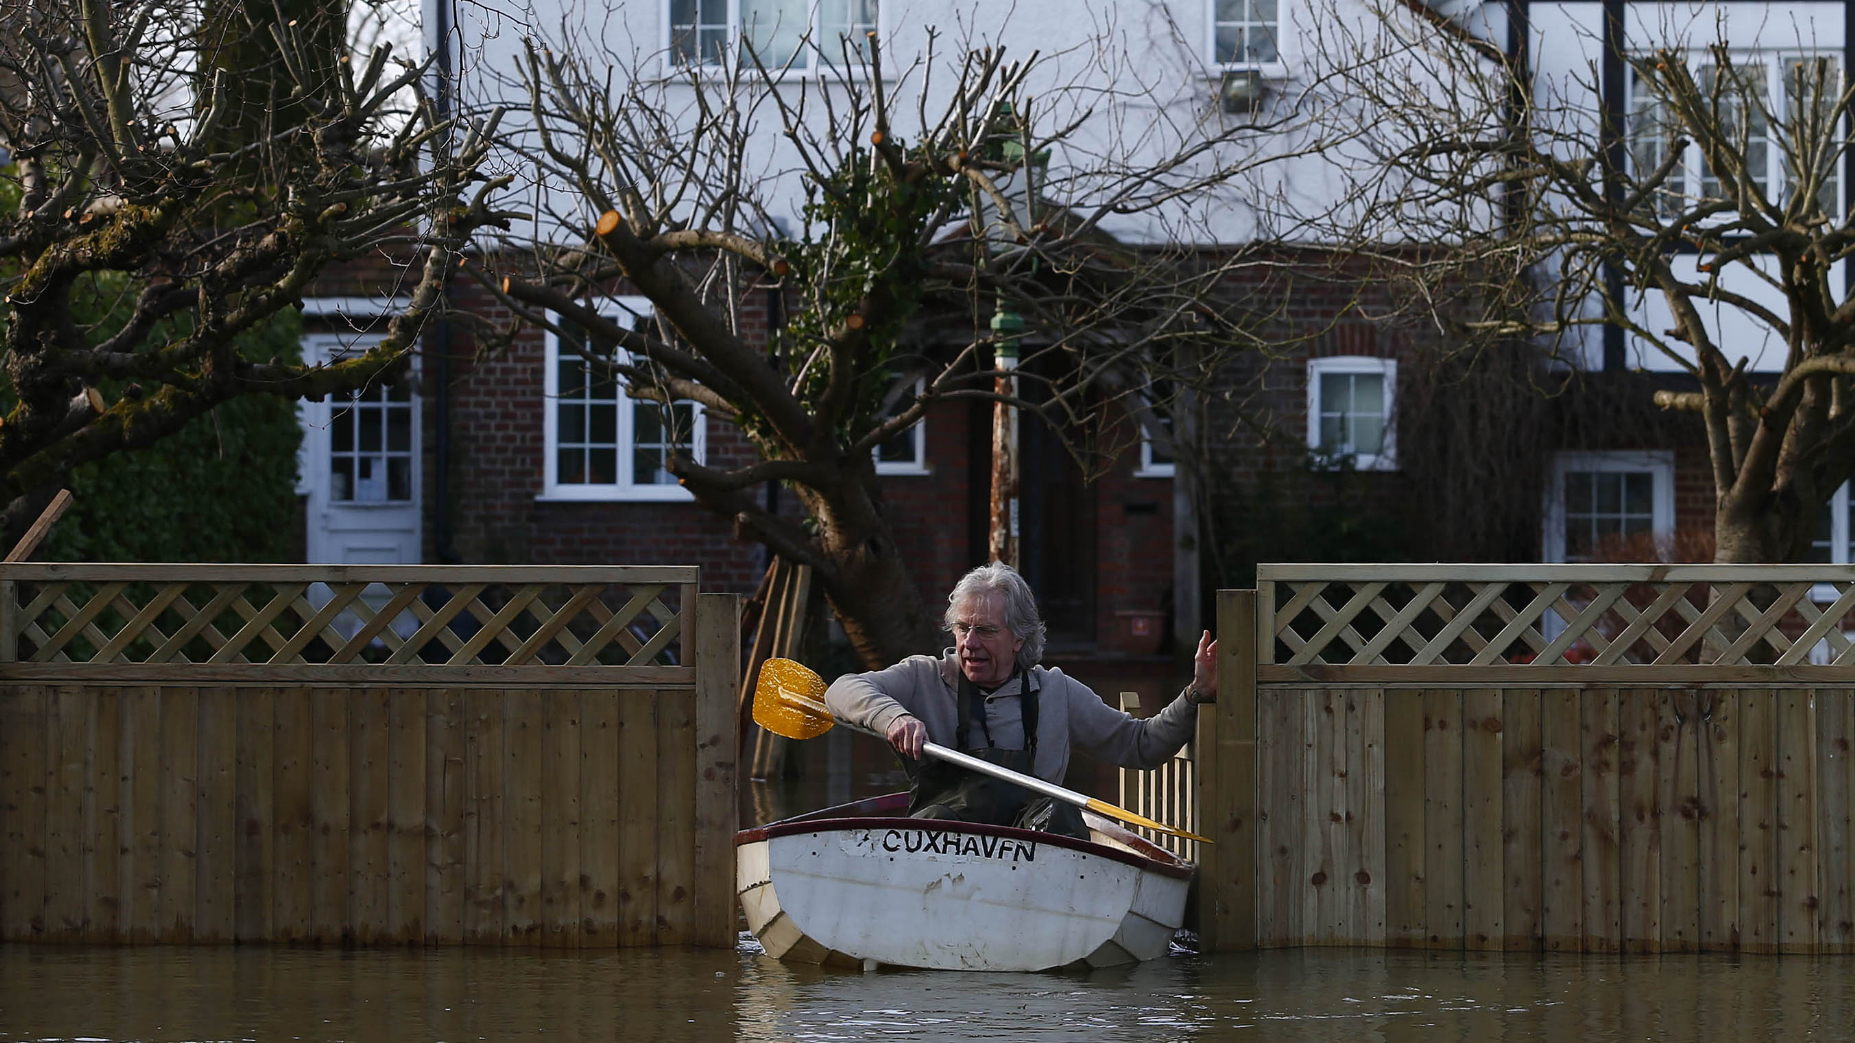 Nigel Gray leaves his home in a rowing boat after the river Thames flooded the village of Wraysbury, southern England February 10, 2014. REUTERS/Eddie Keogh